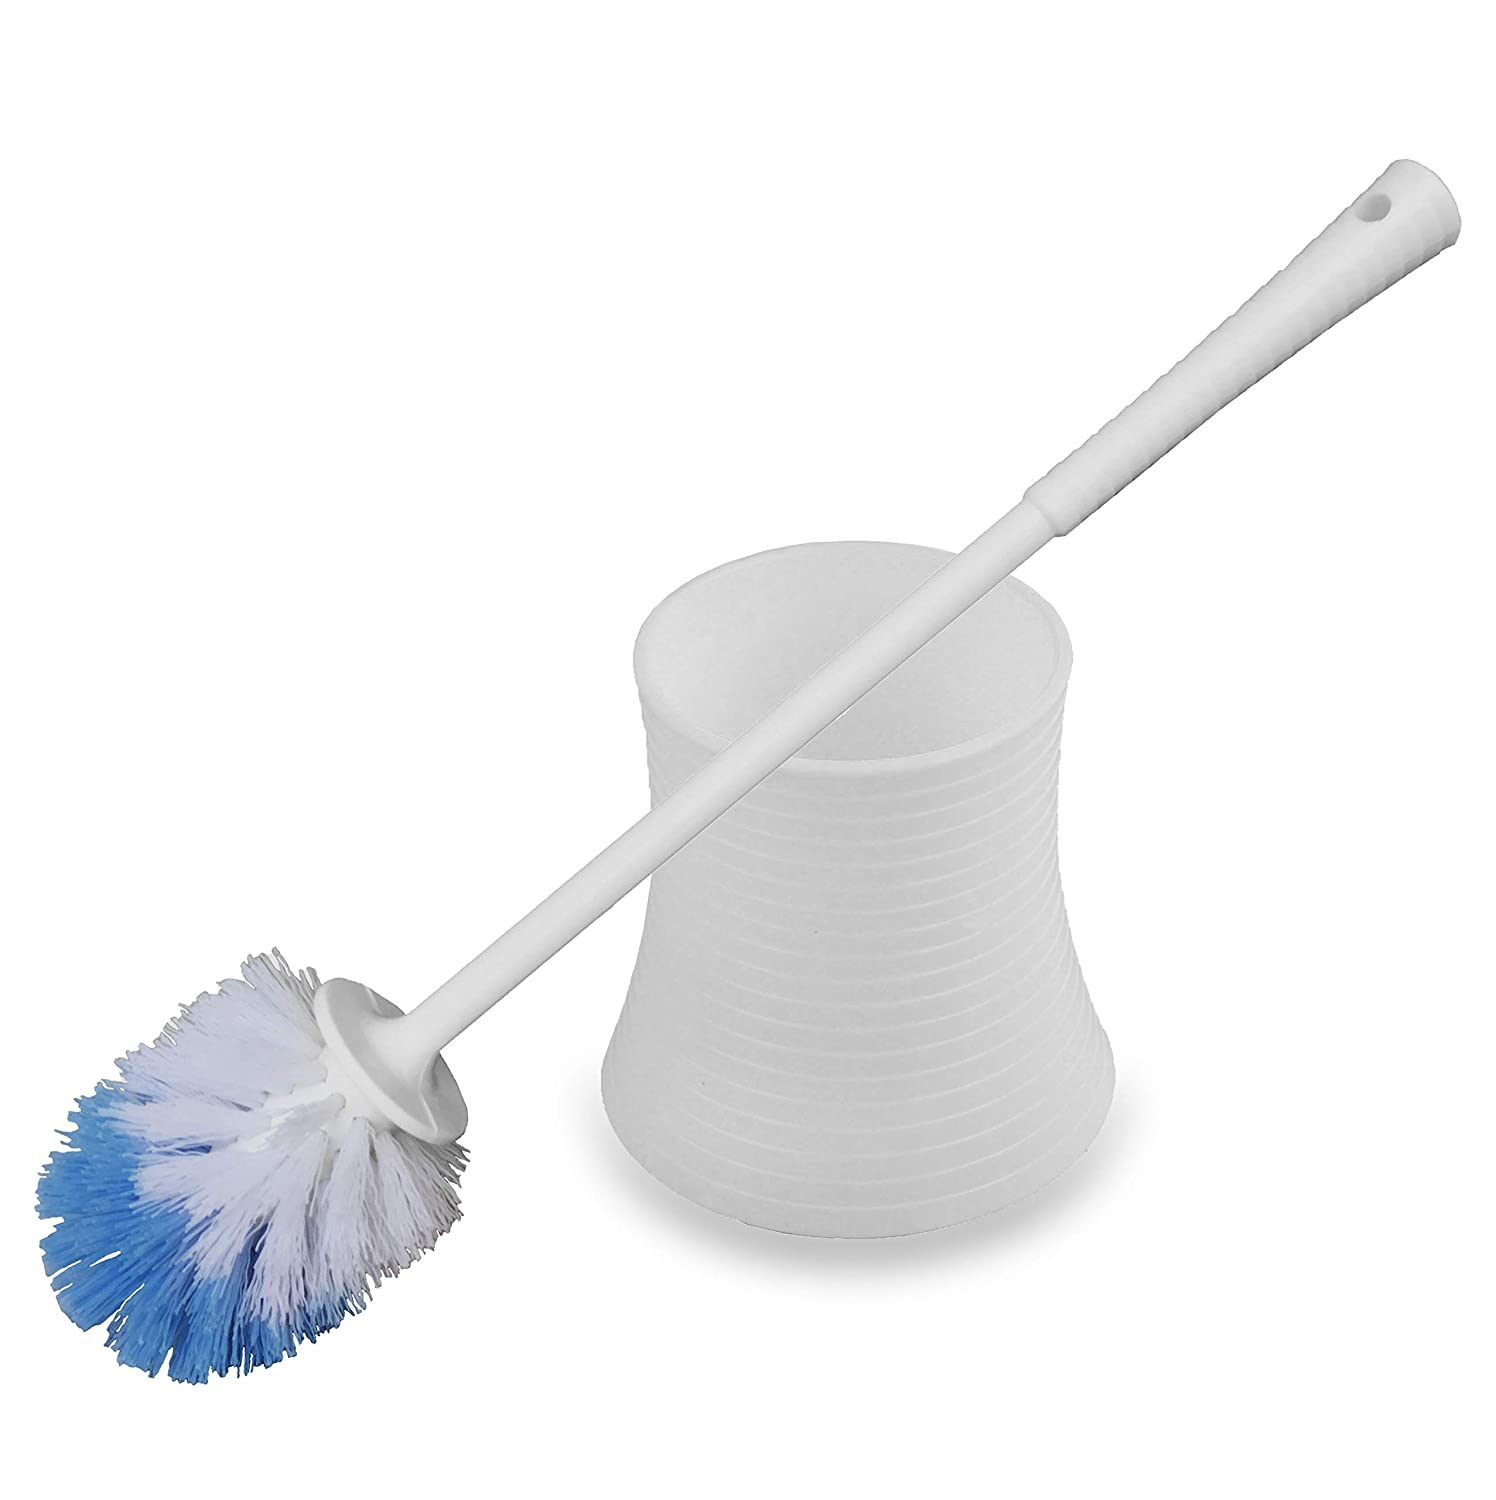 Toilet Brush,Kinsky Strong Bristles Good Grips Hideaway Compact Long Brush and Enough Heavy Base for Bathroom Toilet SYNCHKG097761